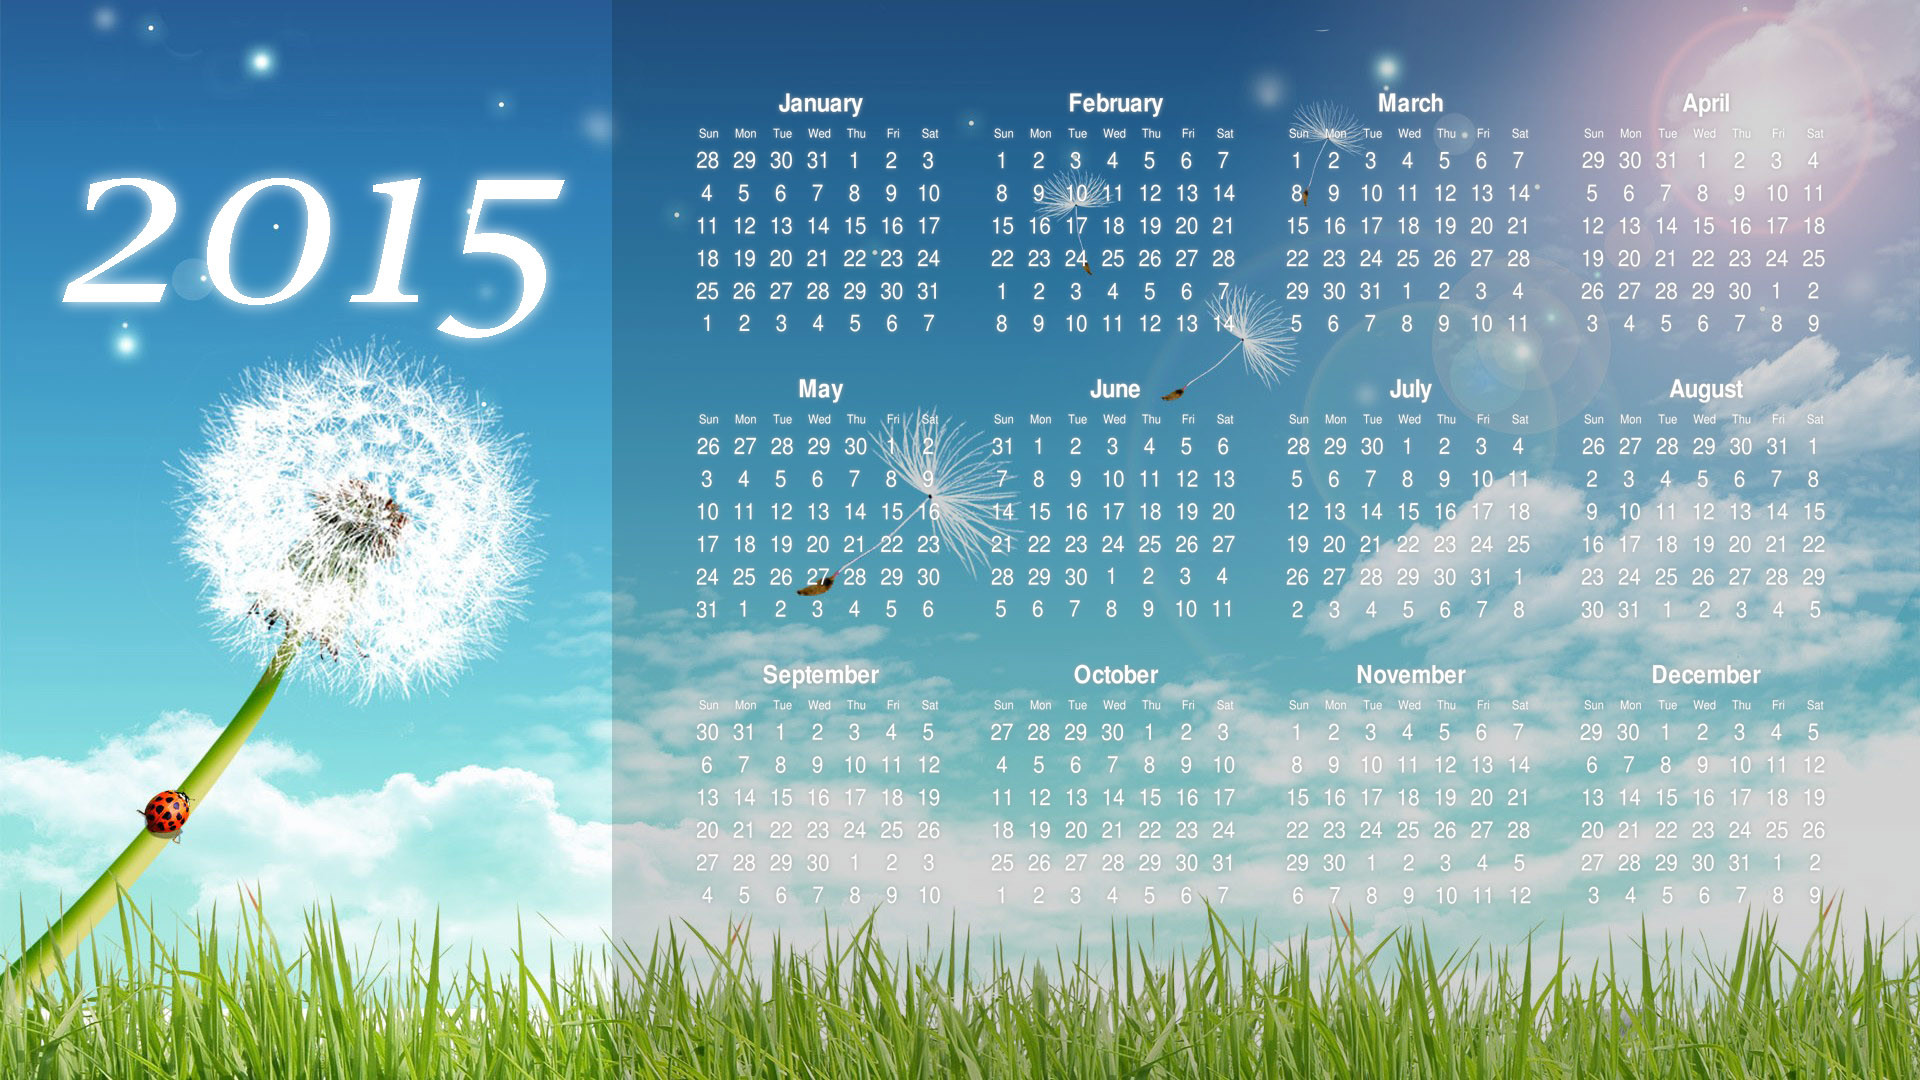 1920x1080 2015 Calendar HD Wallpapers | Download Free Desktop Wallpaper Images .